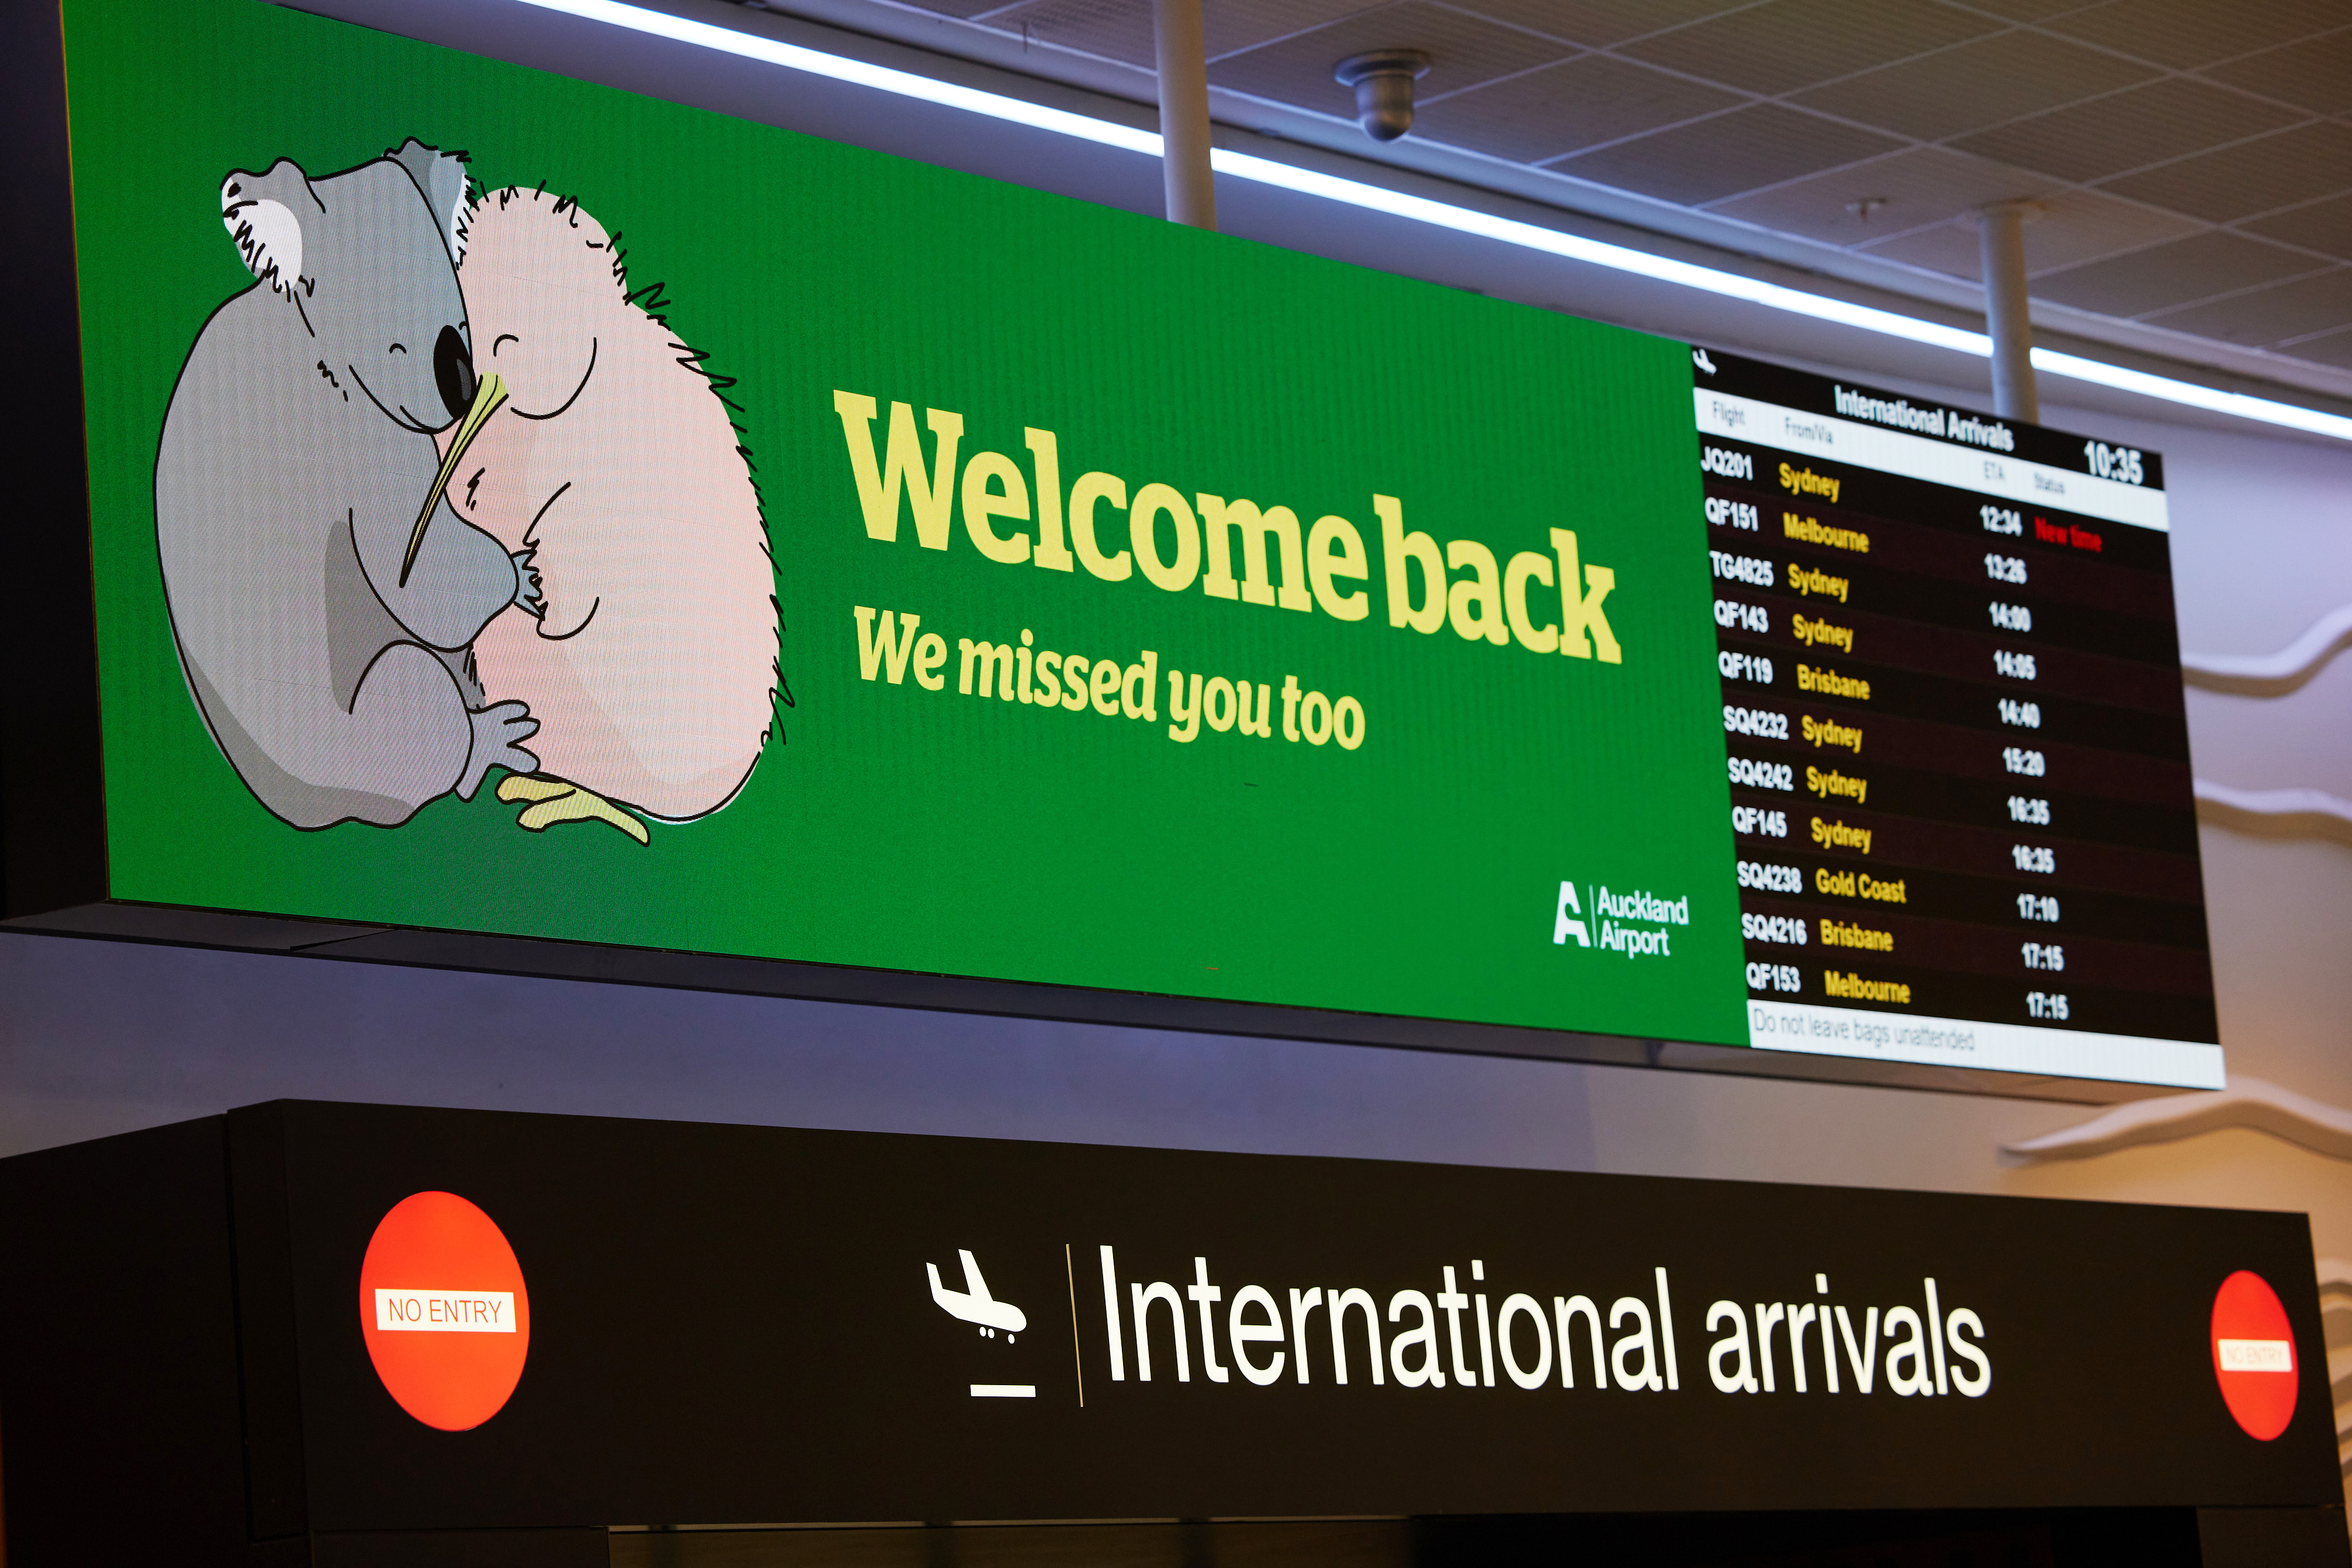 A welcome back sign features a koala and a kiwi at Auckland International Airport in Auckland, New Zealand, on Monday, April 19, 2021. Australia and New Zealand on Monday started their first quarantine-free flights since the pandemic began, after they successfully halted Covid-19 transmissions from spreading through their nations. Photographer: Brendon O'Hagan/Bloomberg